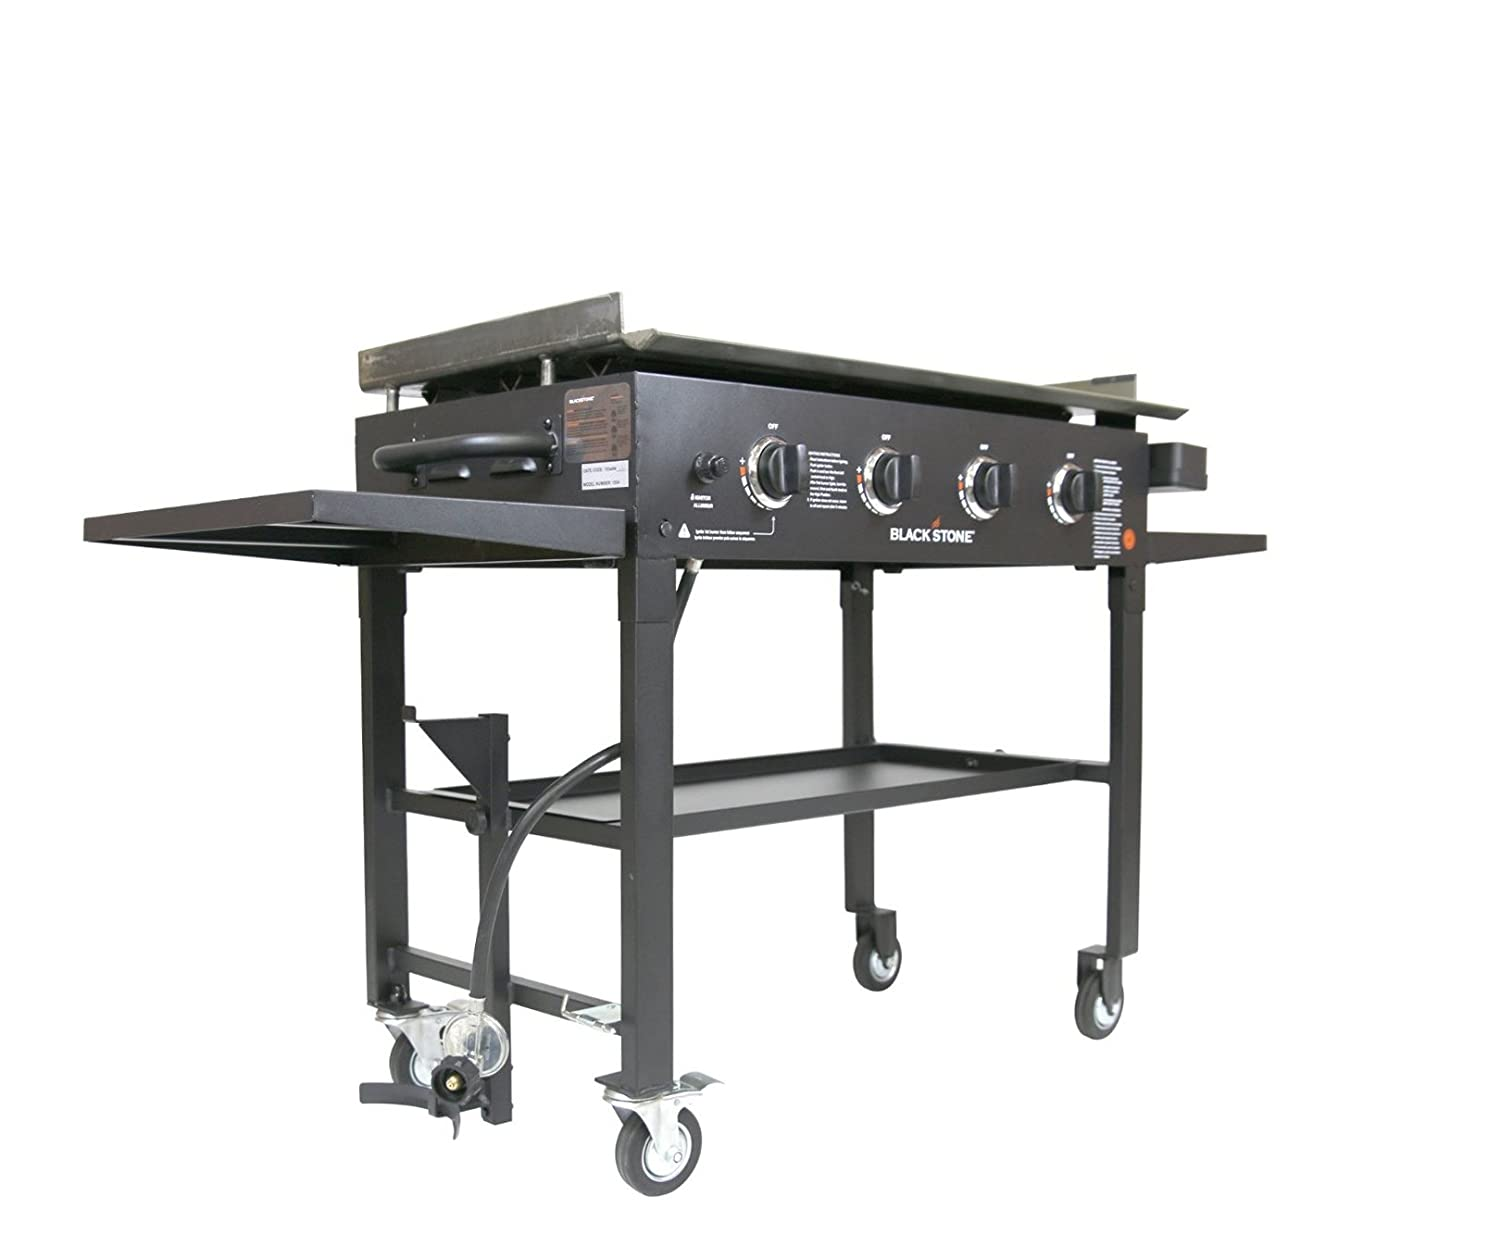 Outdoor Griddle Grill ~ Outdoor kitchen gas grill griddle cooking propane